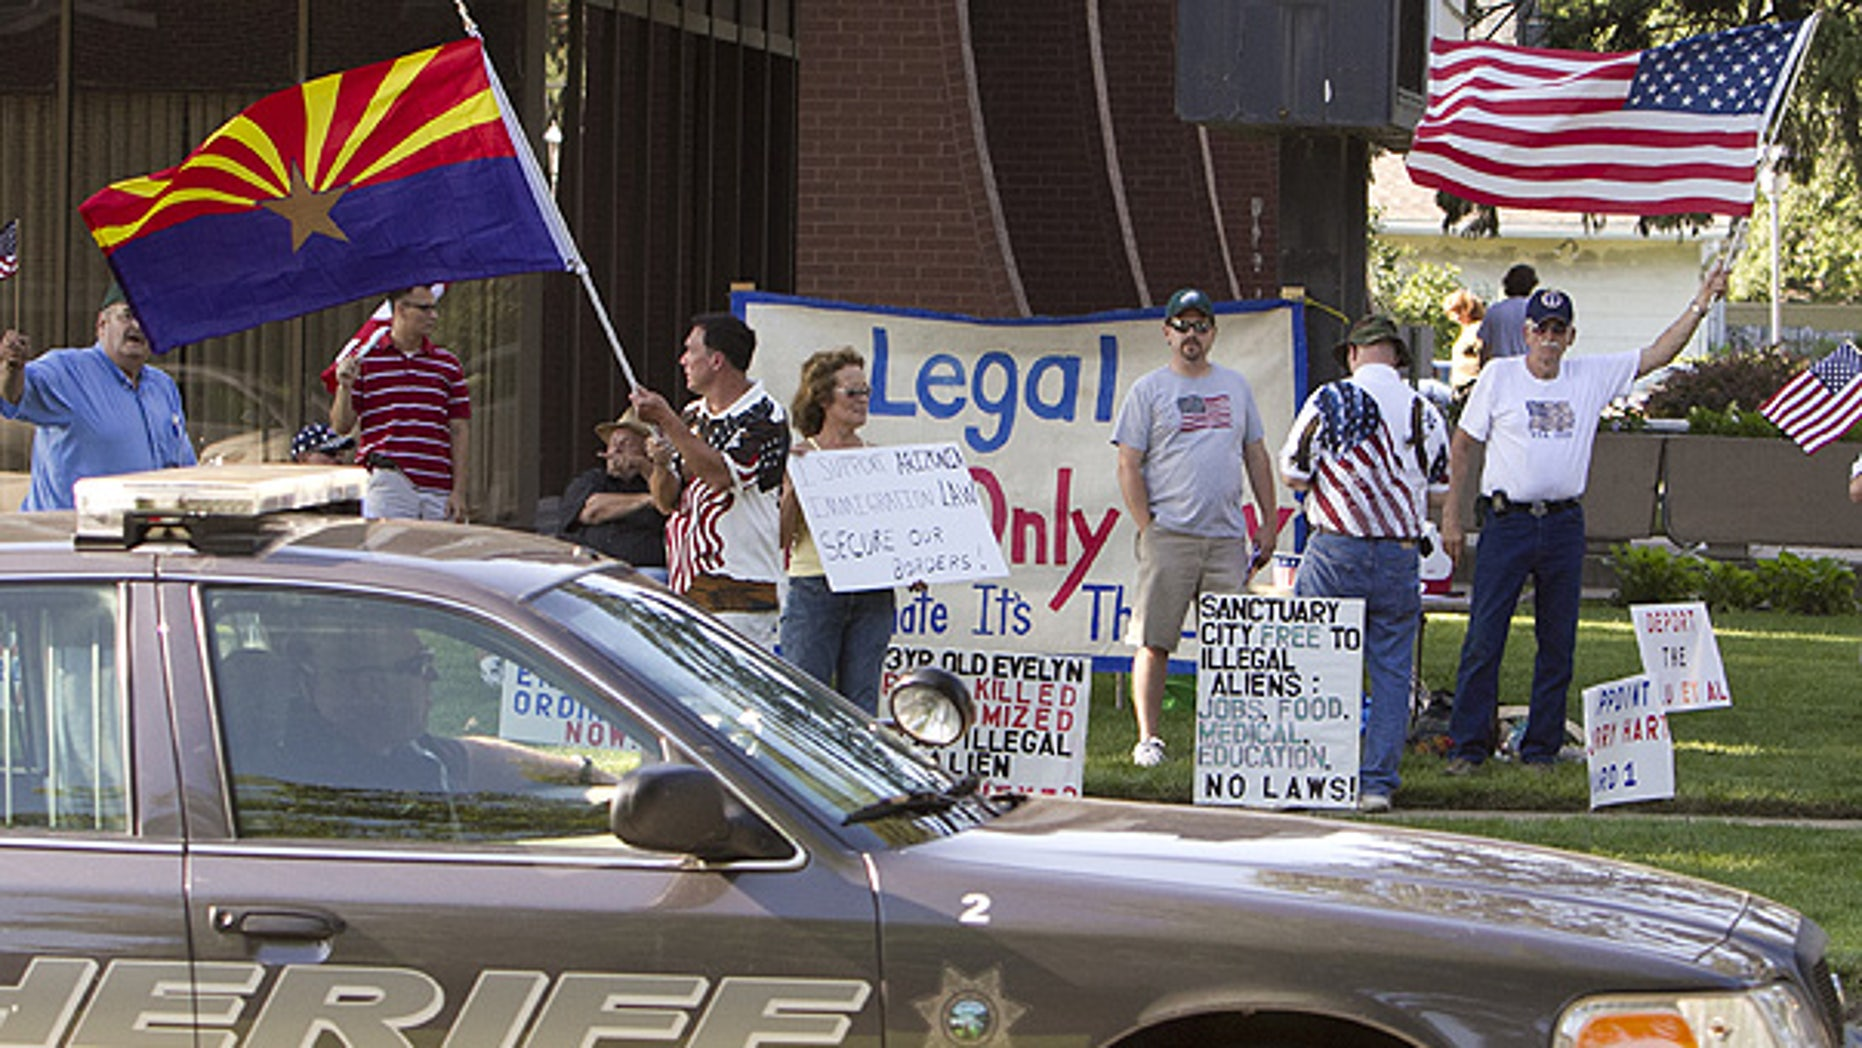 July 13: A group demonstrates against illegal immigration outside the Fremont, Nebraska, city hall.